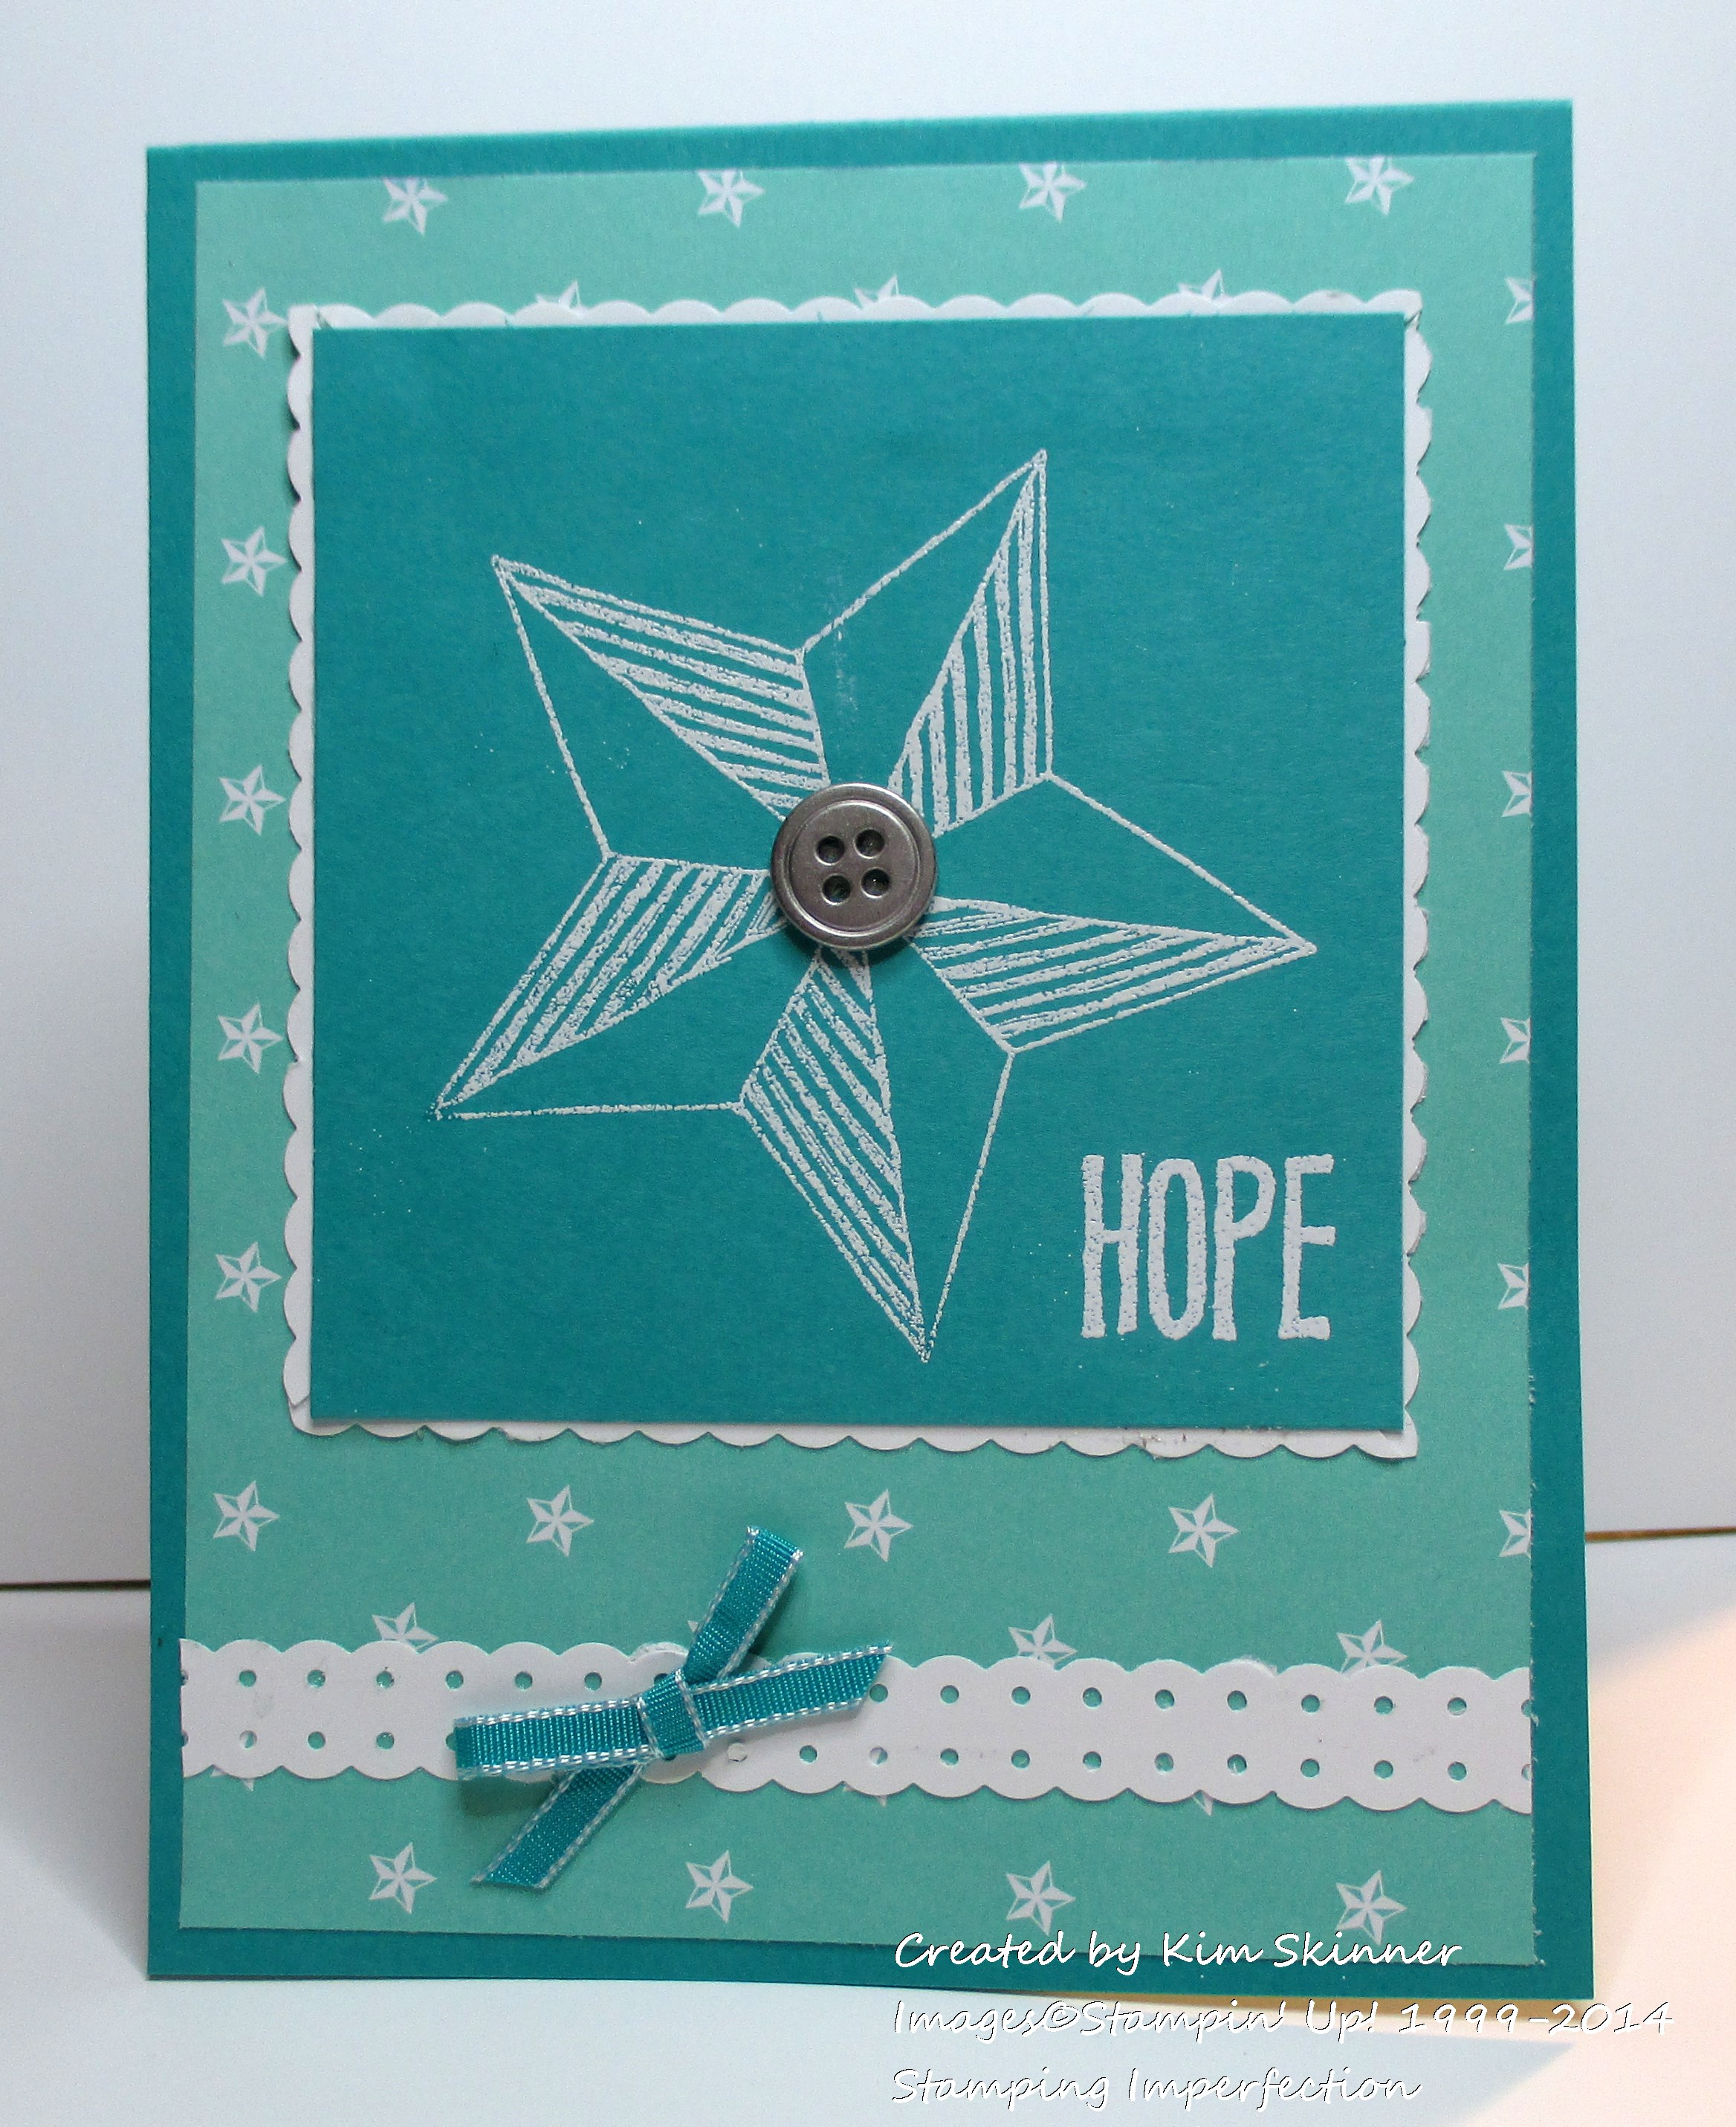 Stamping Imperfection Dotted Scallop Border Punch Ideas